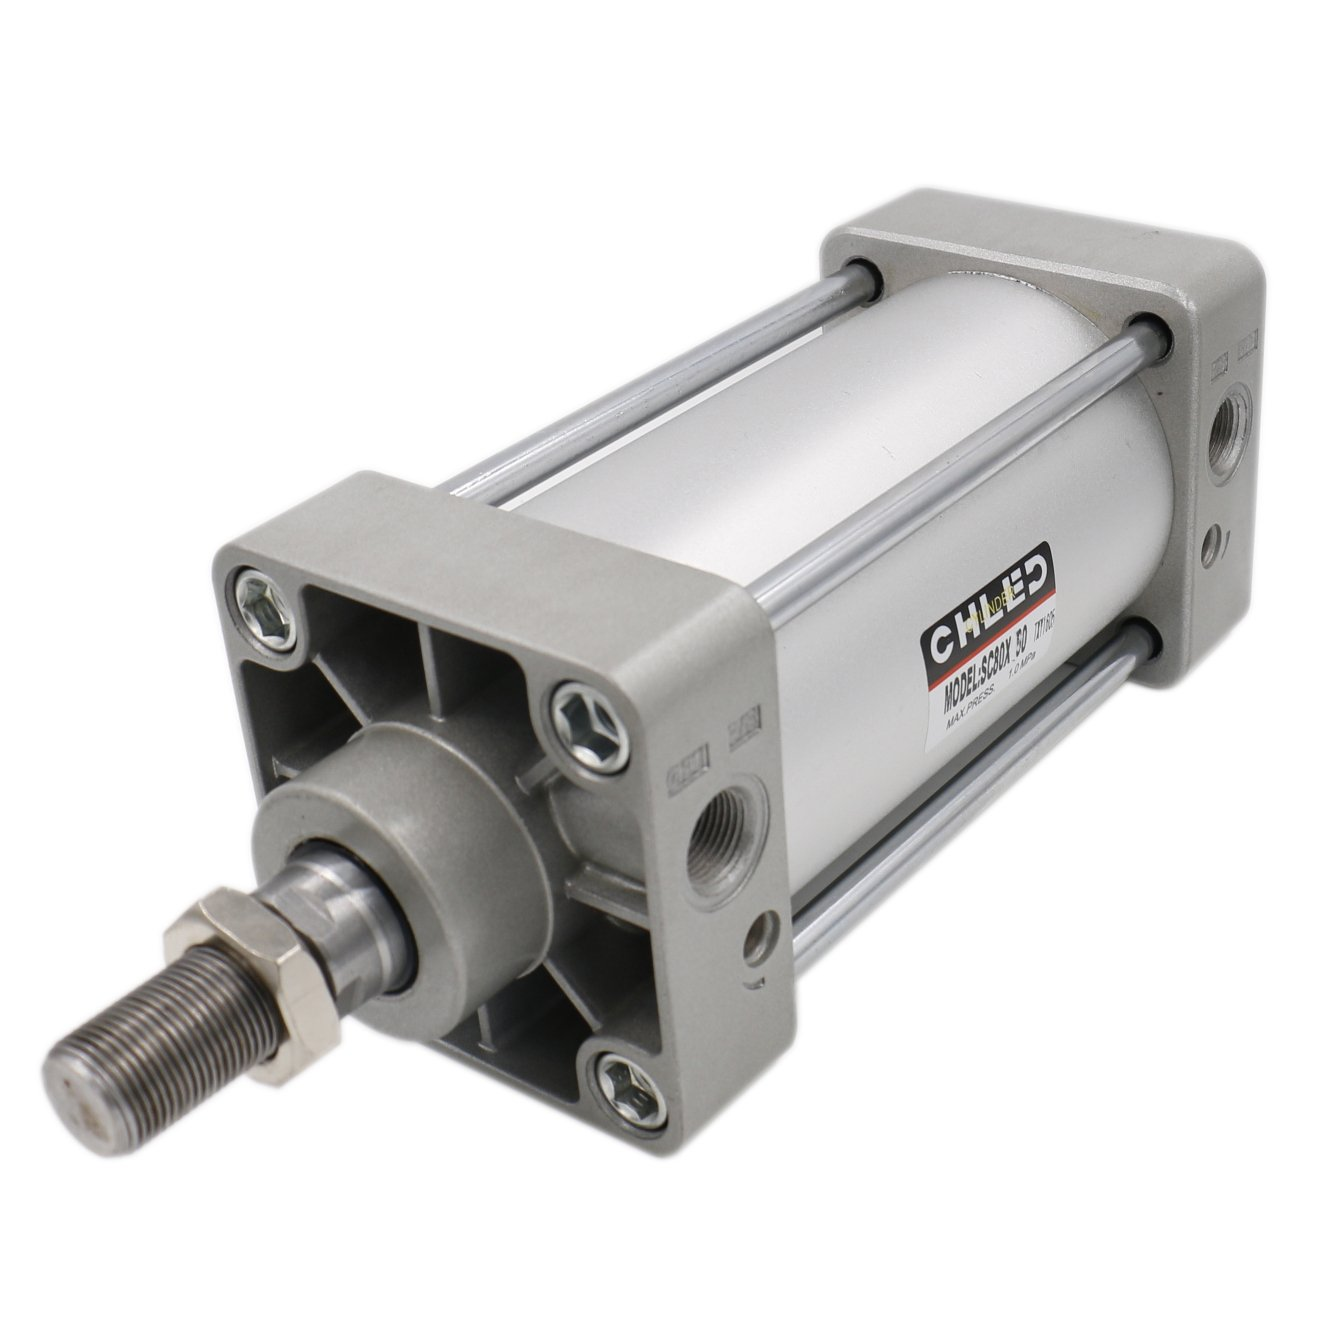 Baomain Pneumatic Air Cylinder SC 80 x 50 PT 3/8, Bore: 80mm, Stroke: 50mm, Screwed Piston Rod Dual Action 1 Mpa